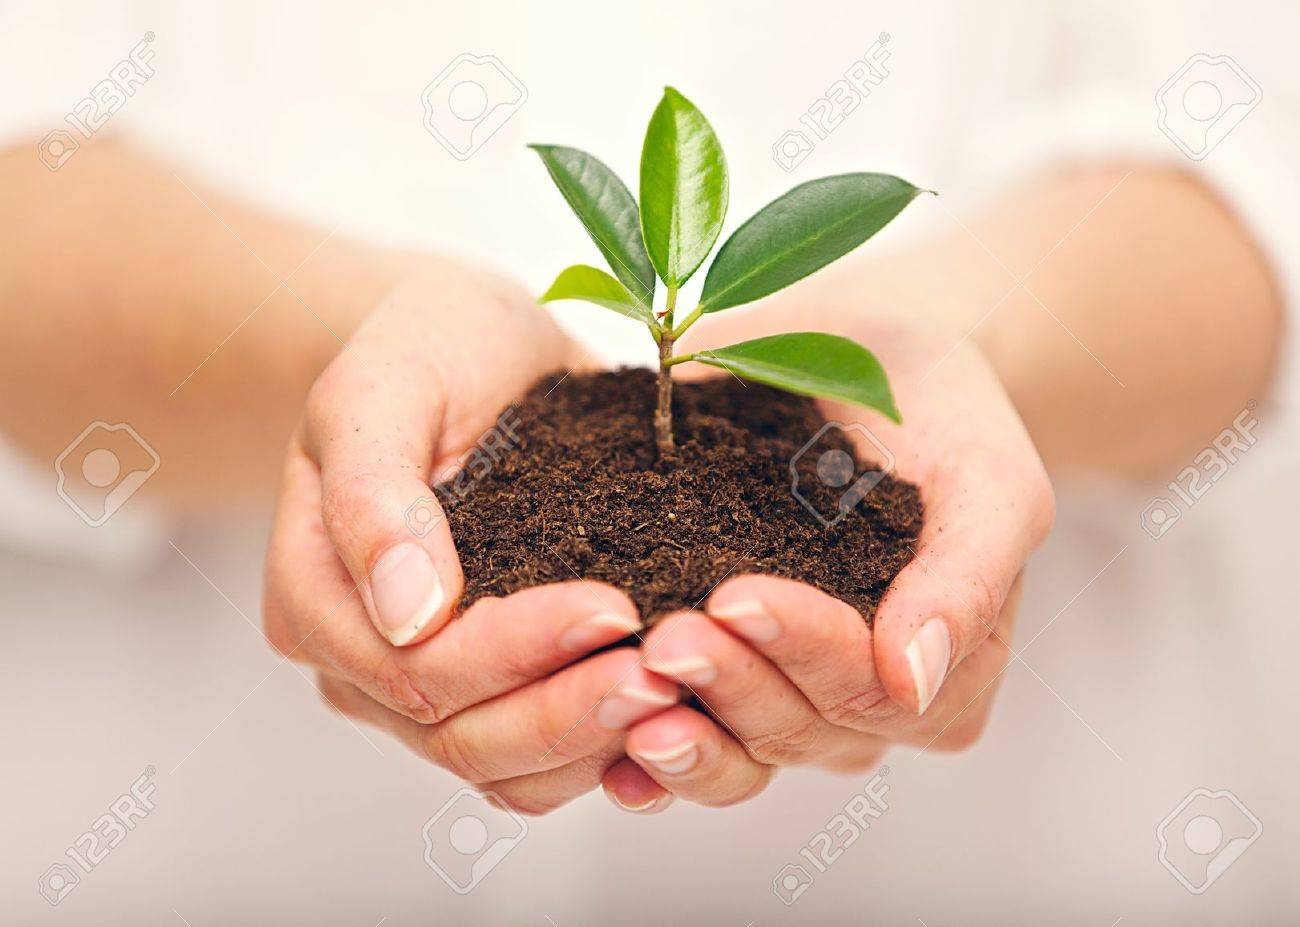 Woman's hands with a young plant growing in soil Stock Photo - 20899474